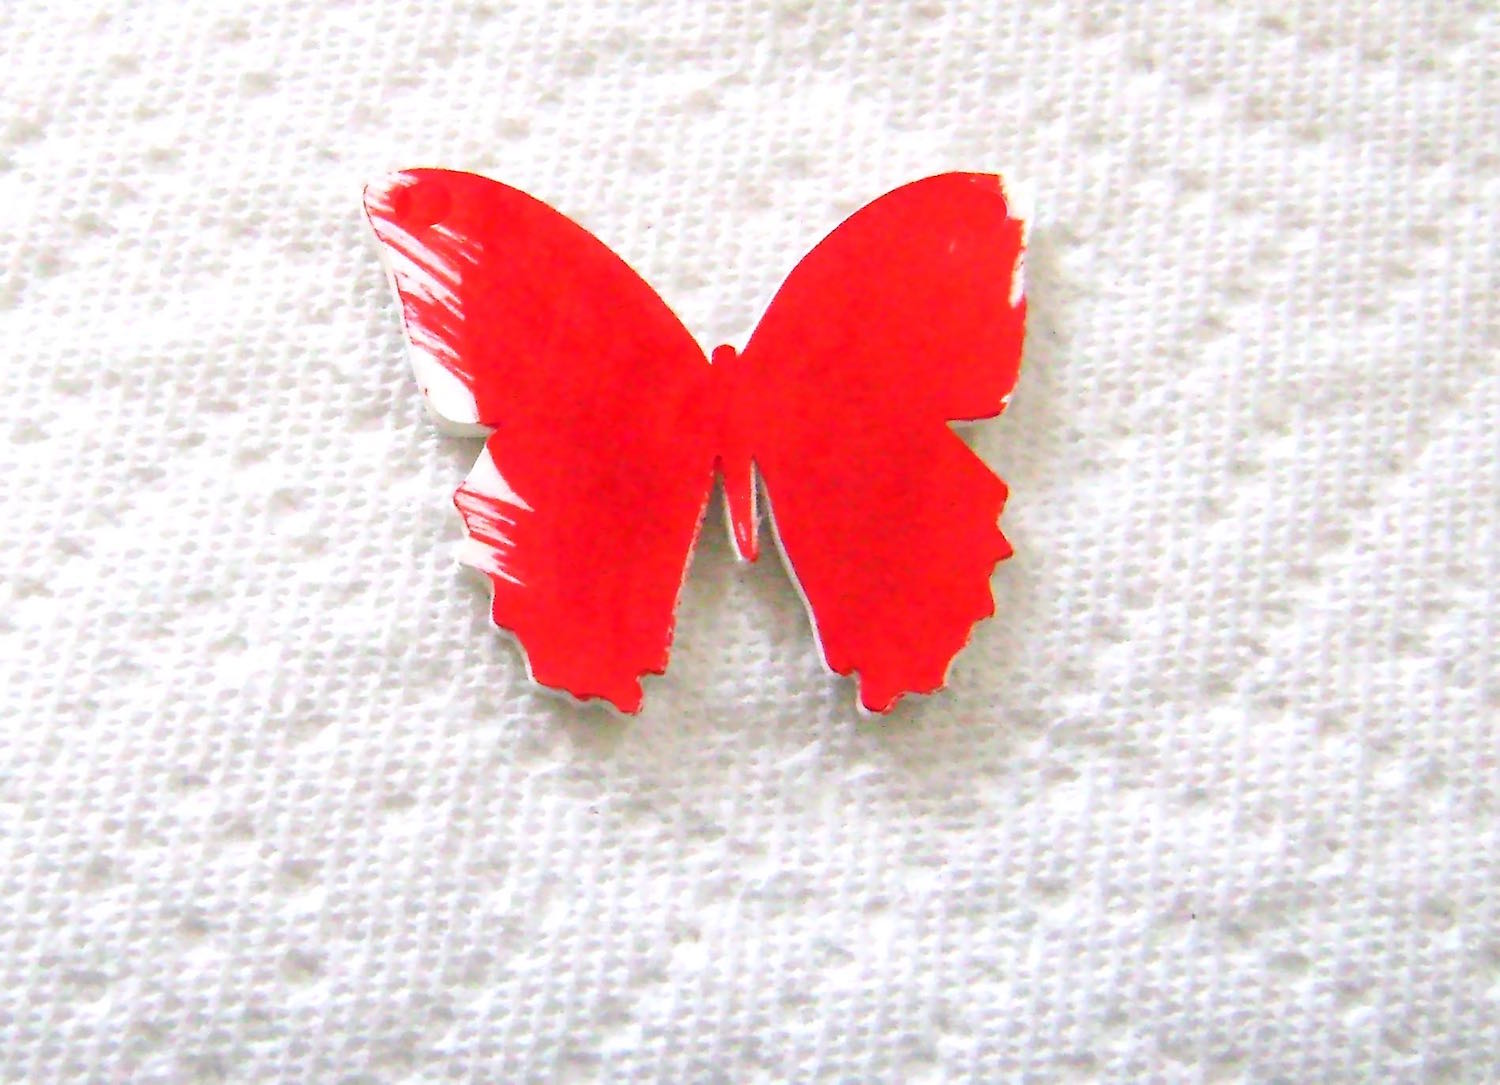 step 5 - Paint the reverse side of the butterfly using the red paint marker.